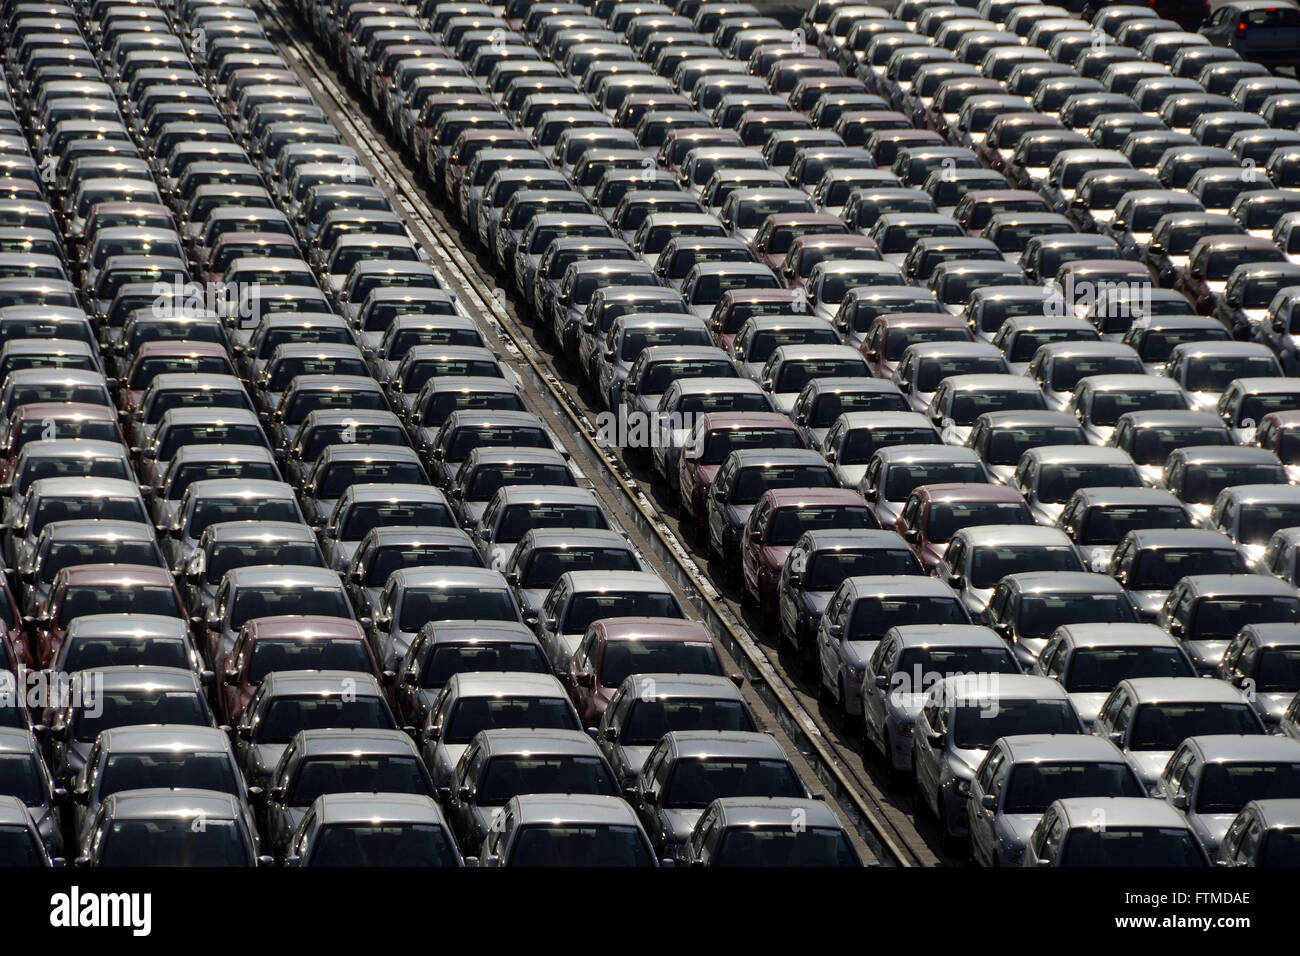 Imported cars in the courtyard of VTE - Vehicle Export Terminal in the Port of Santos - Stock Image